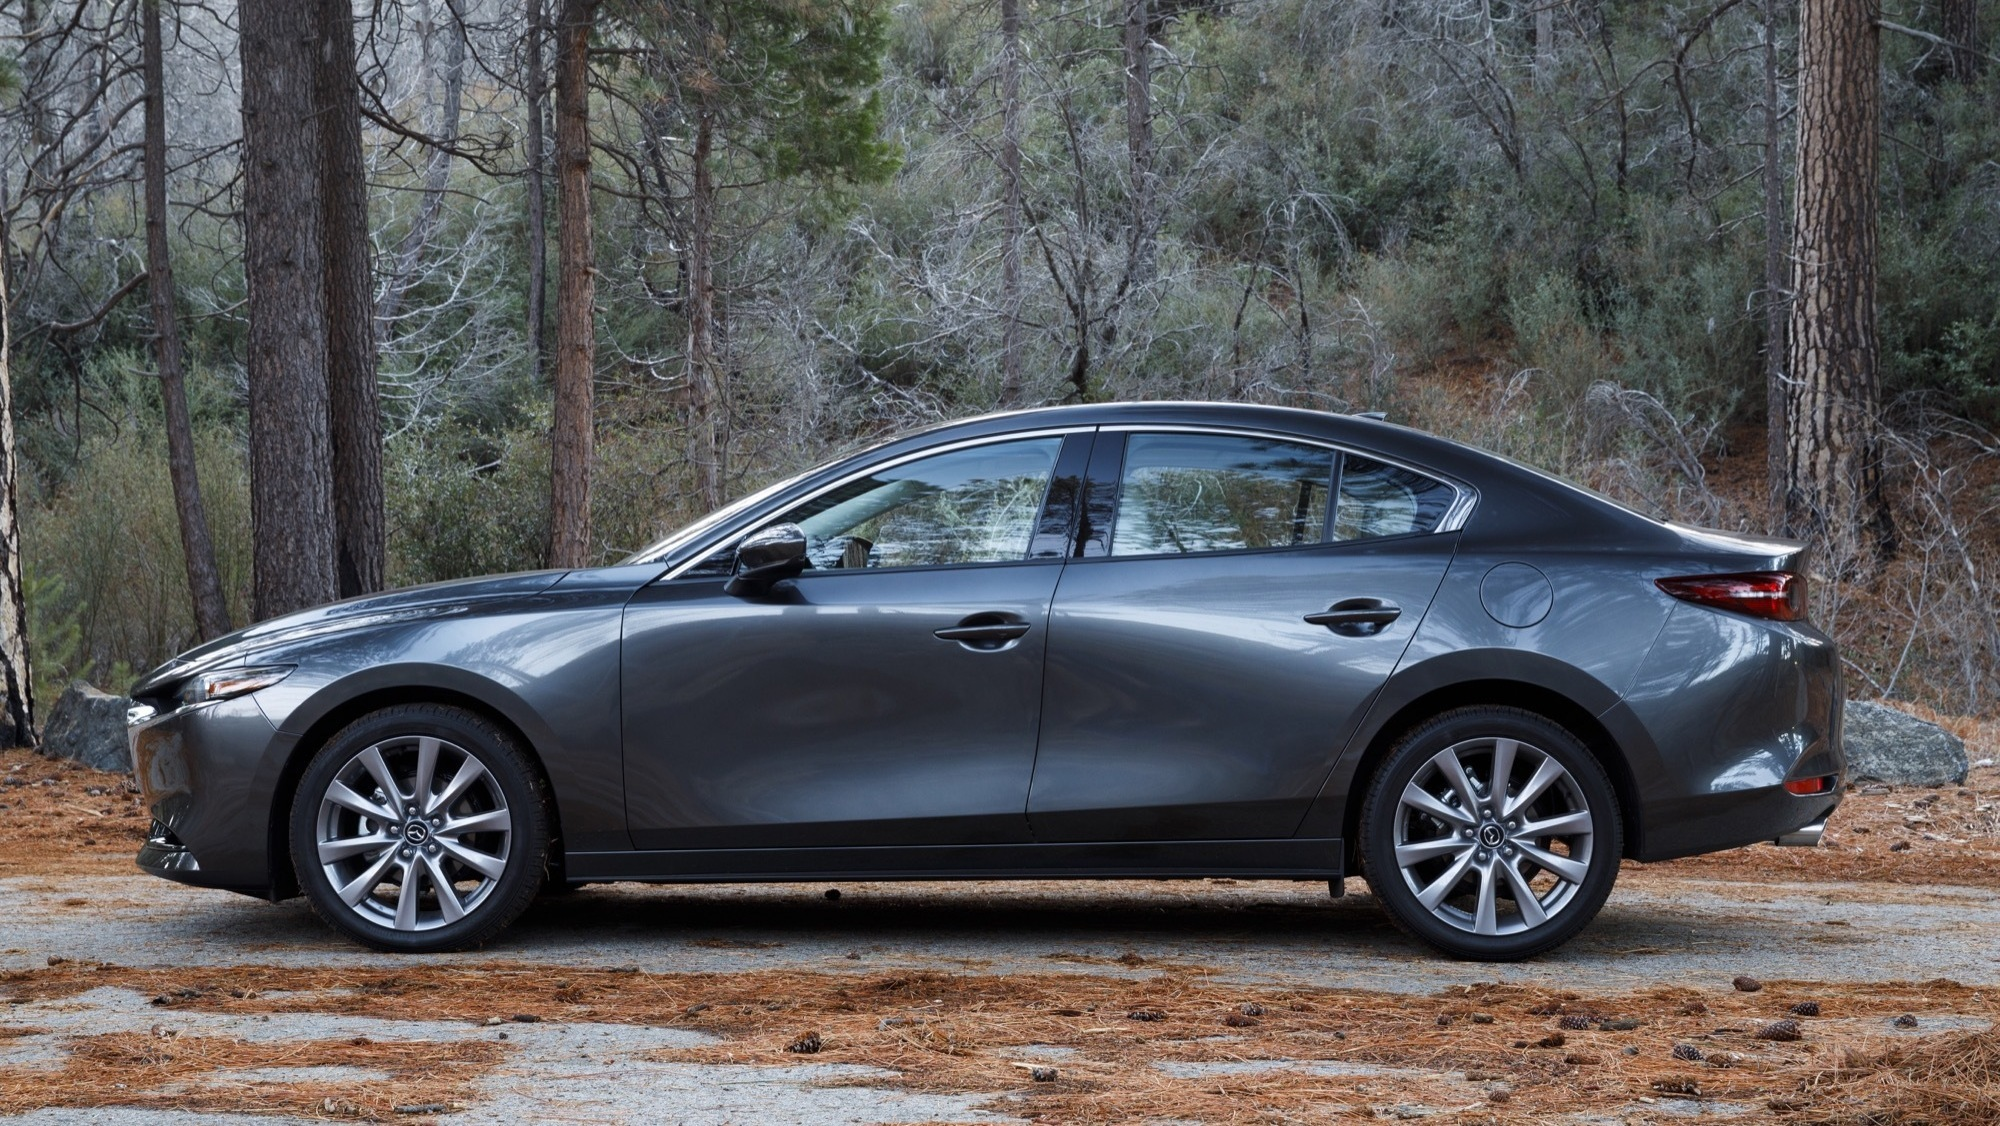 2019 Mazda3 Road Test Review: Specs, stats, and driving impressions